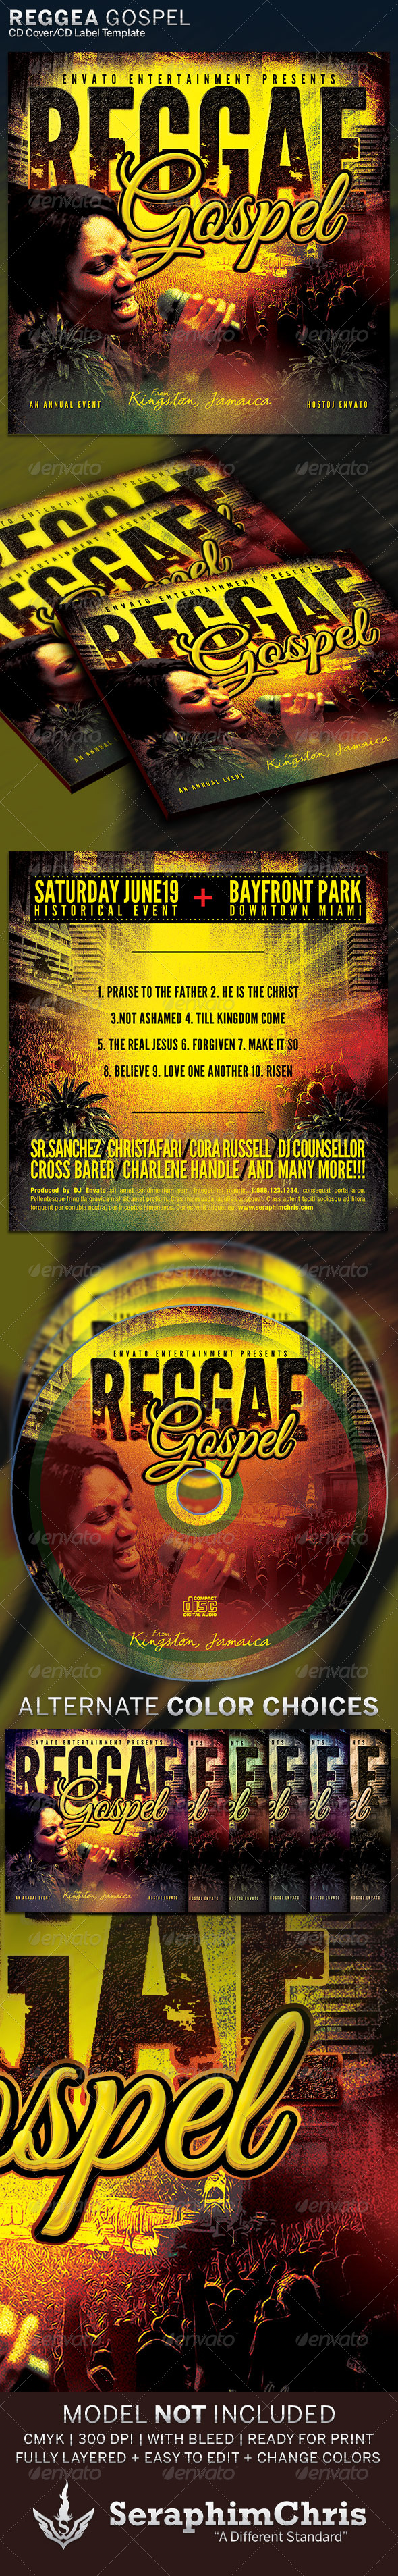 GraphicRiver Reggae Gospel CD Cover Artwork Template 6324827